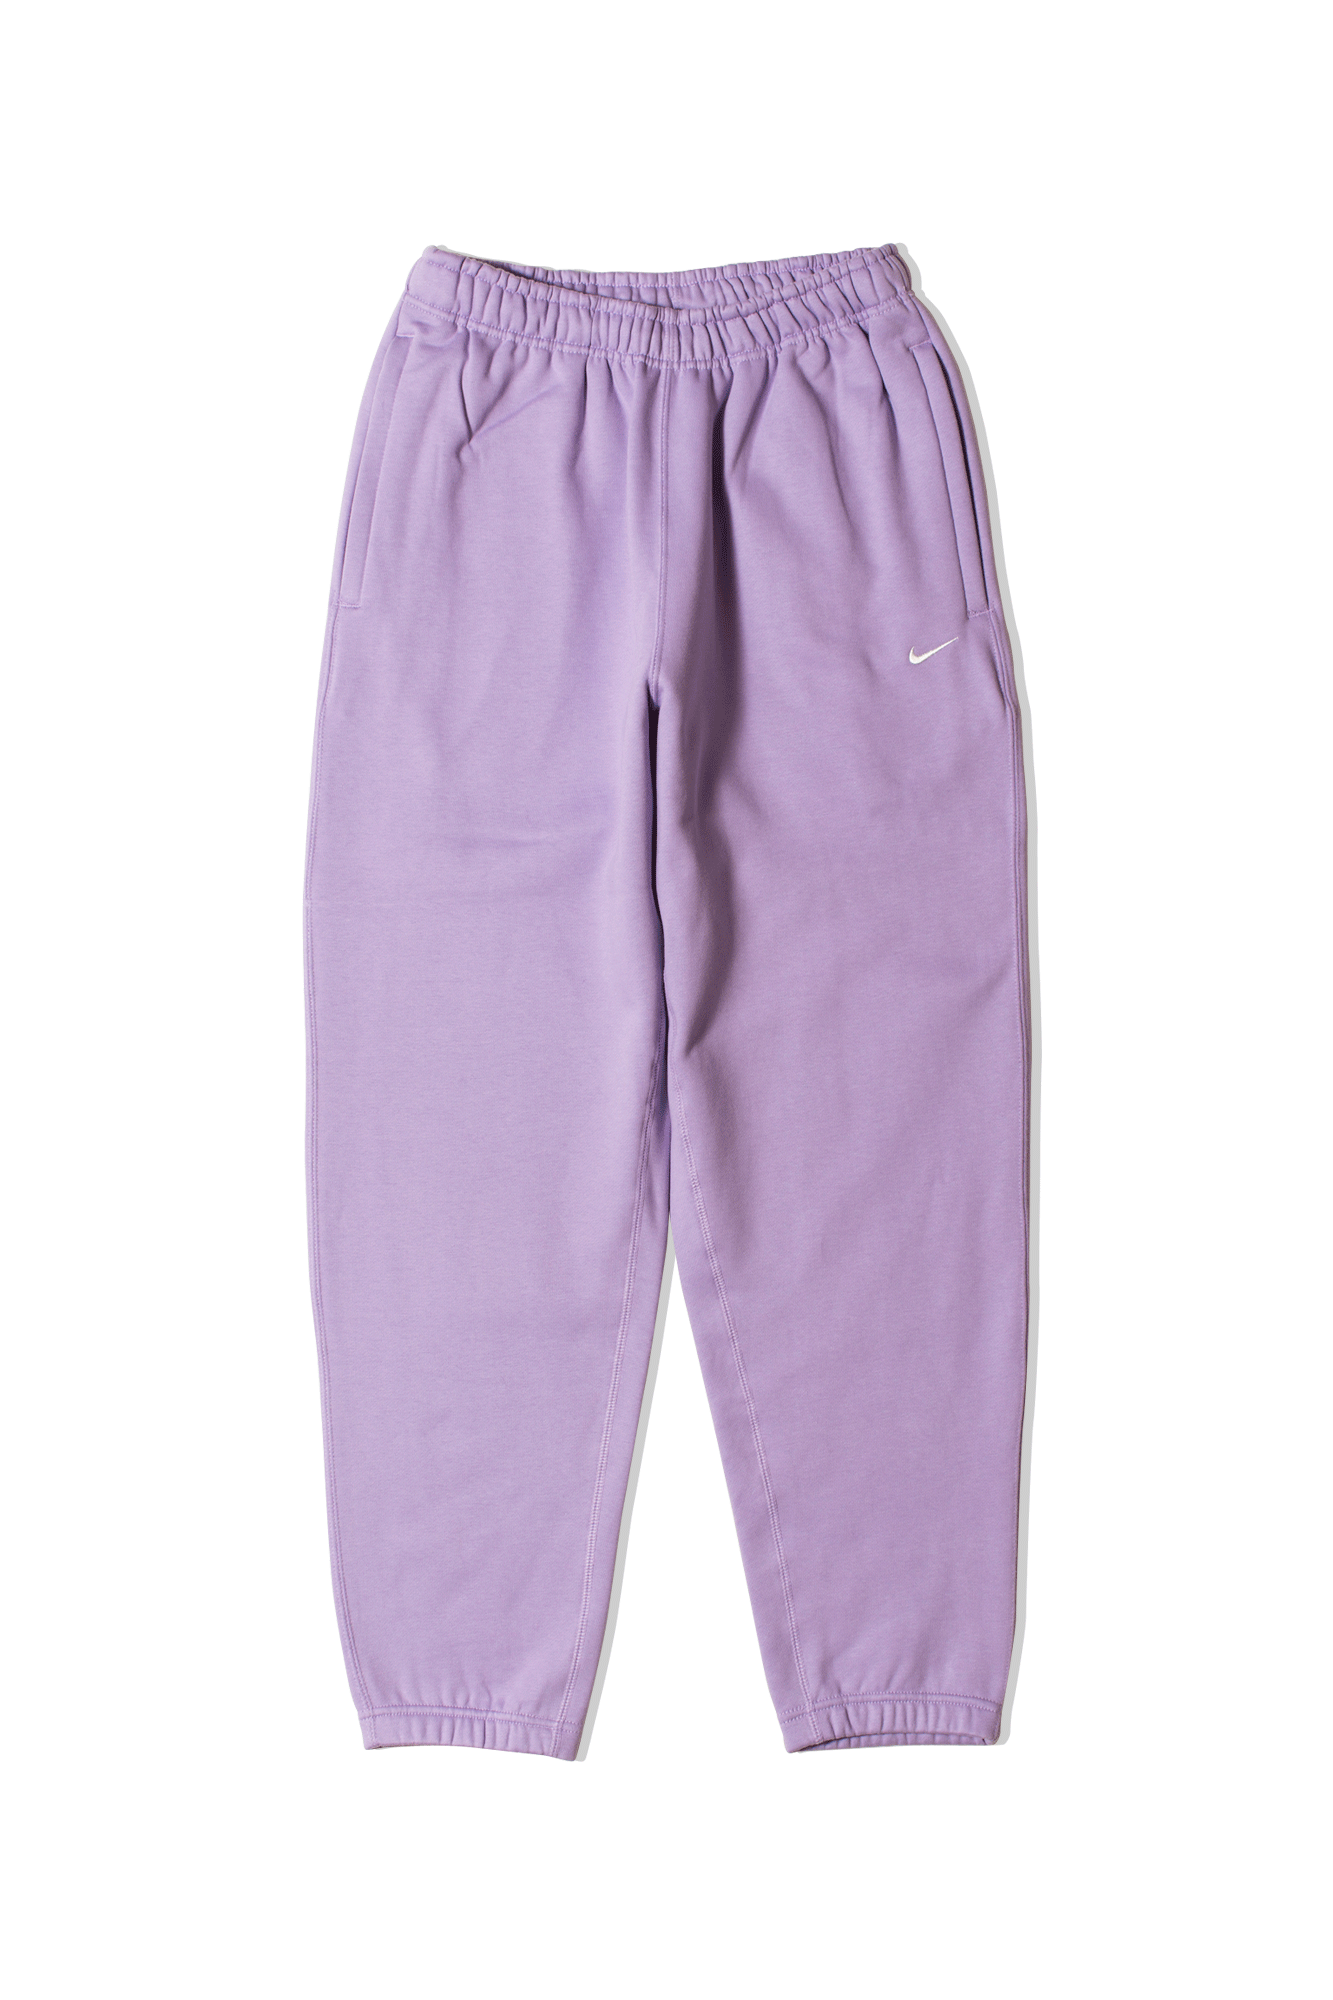 M NRG SlowSwoosh Fleece Pant Purple